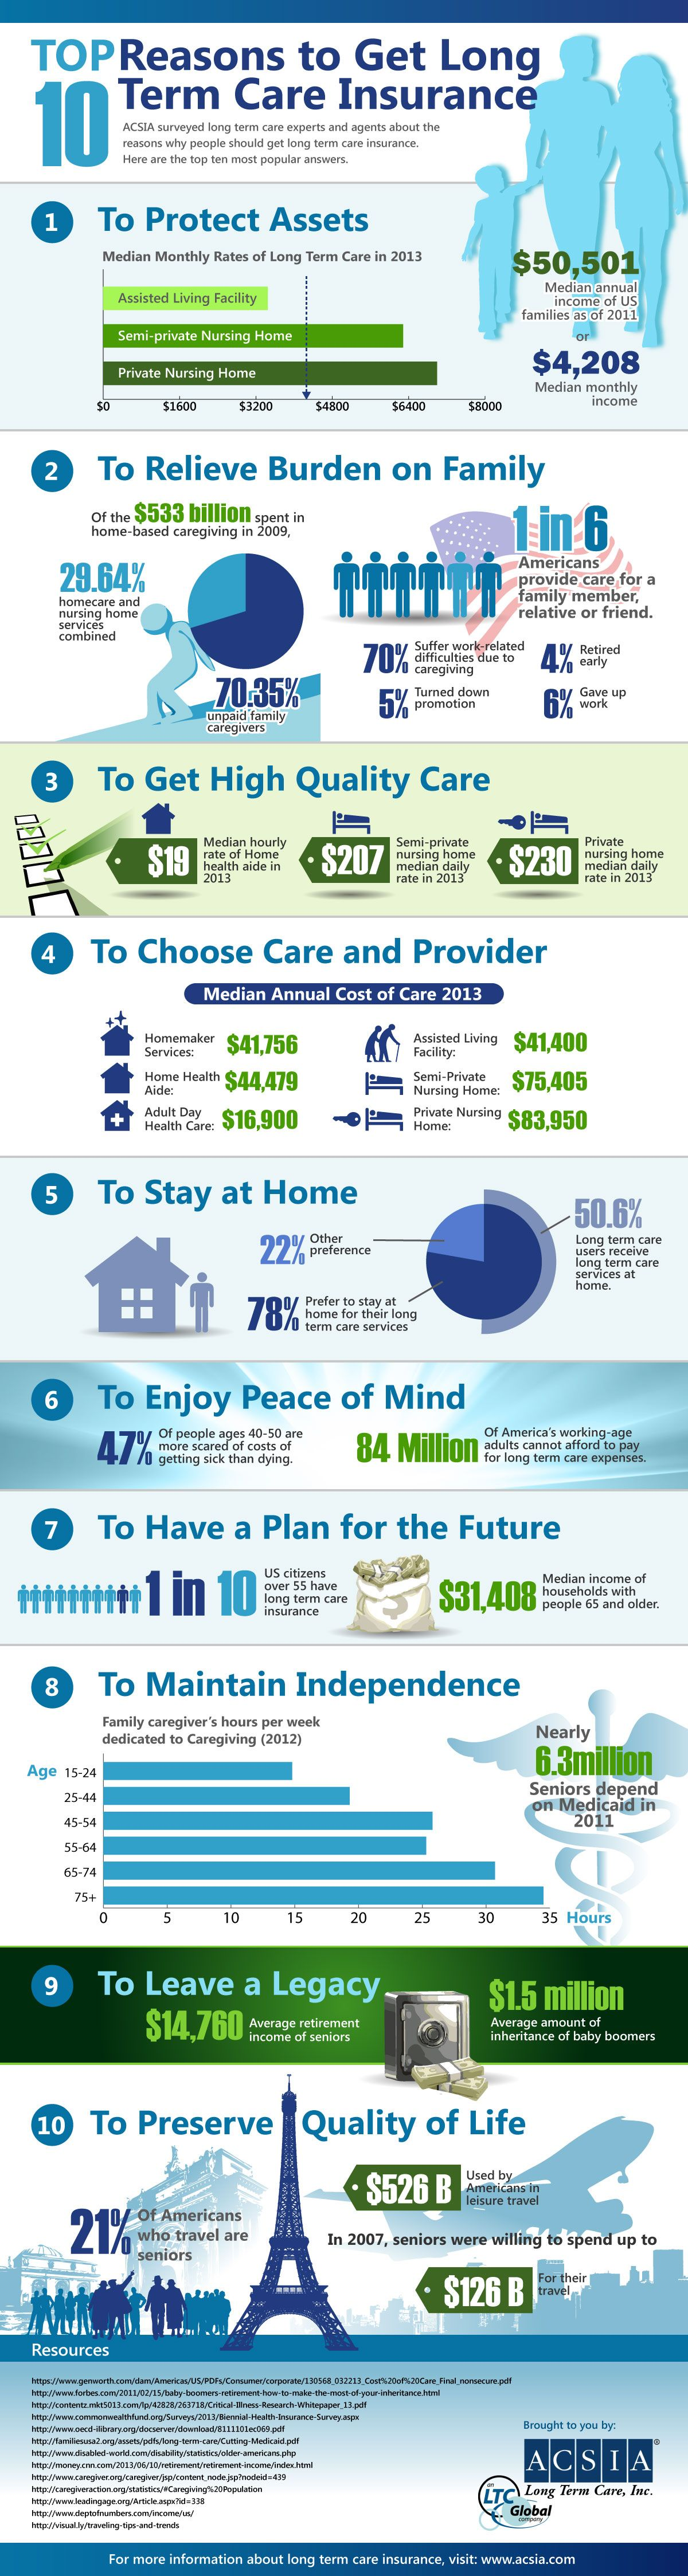 Acsia Partners Top 10 Reasons To Get Long Term Care Insurance